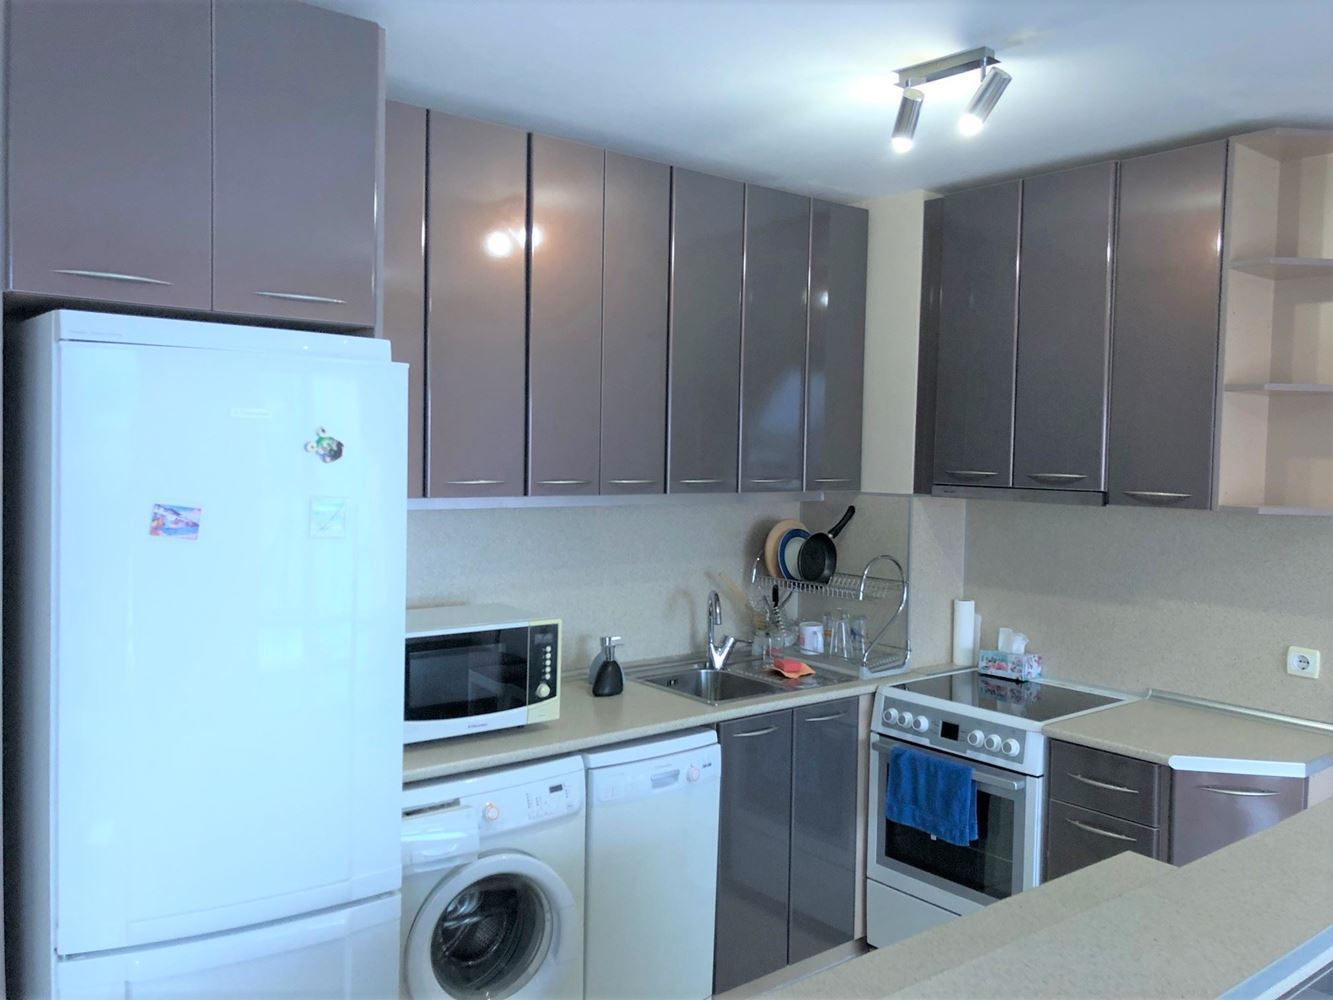 1-bedroom Apartment for Rent, Mladost 1A